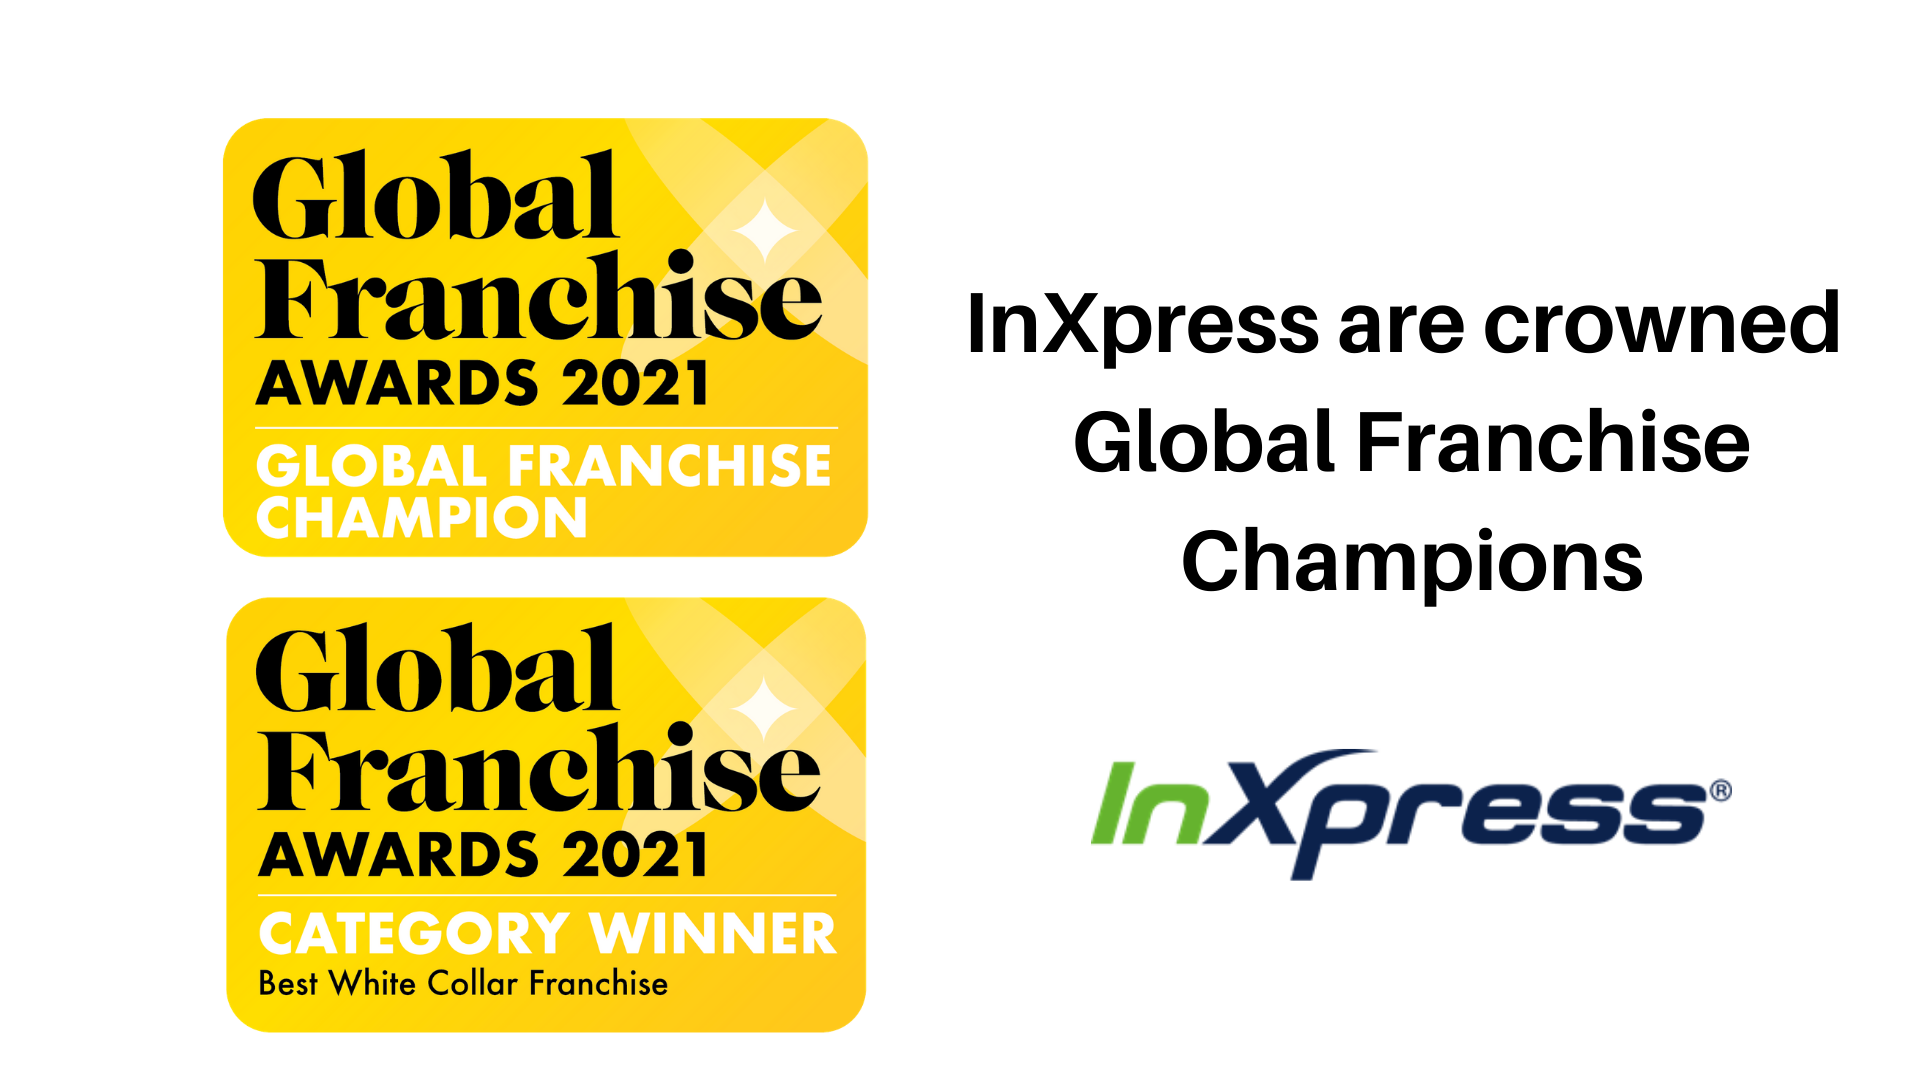 InXpress are crowned Global Franchise Champions